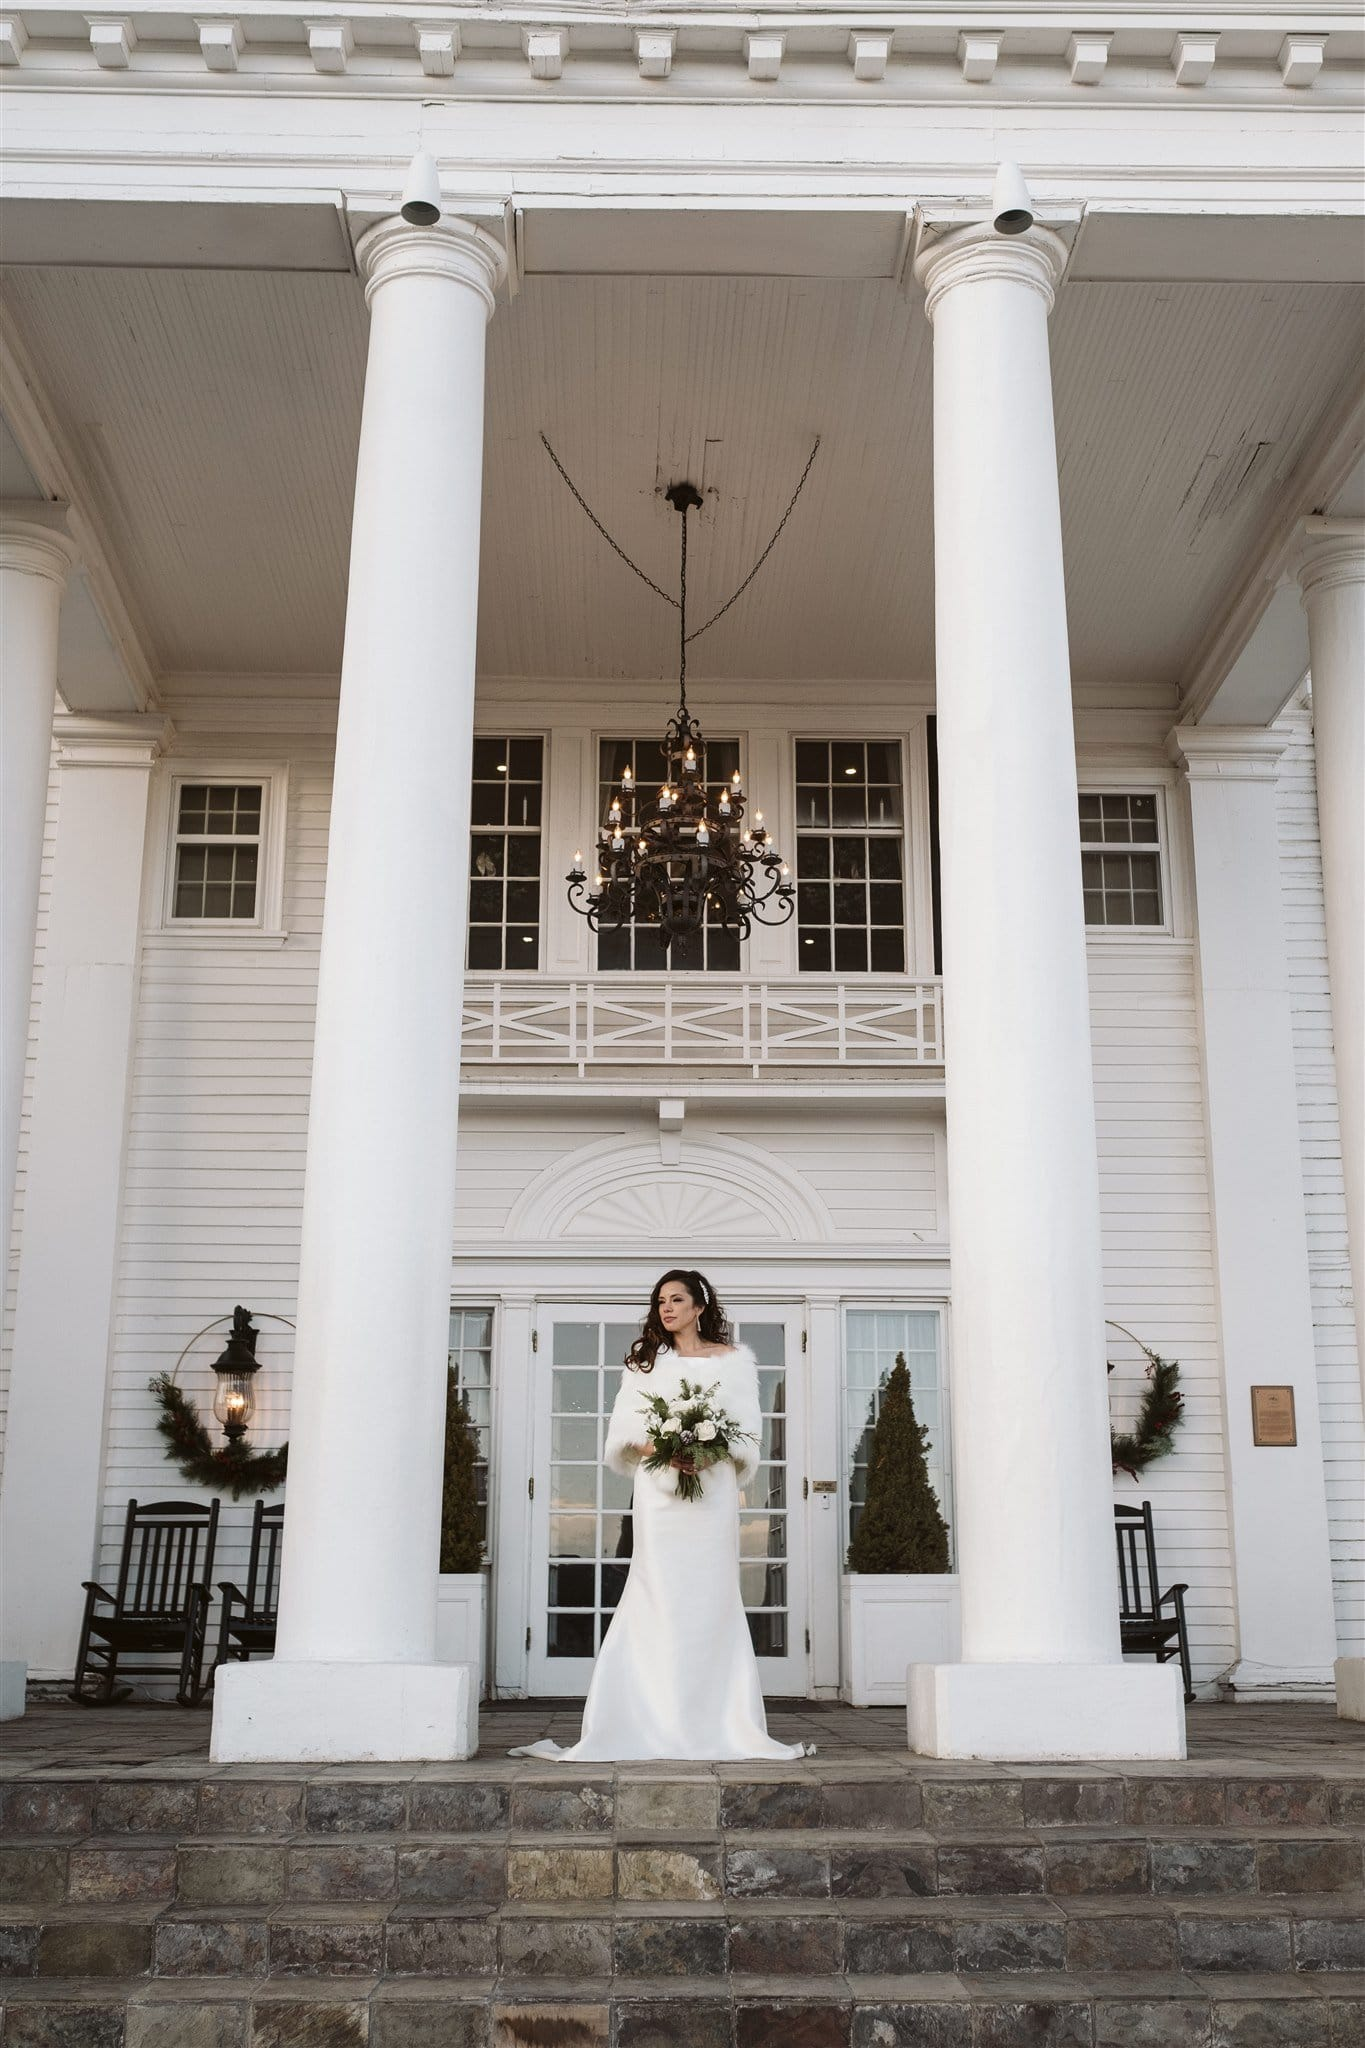 Classic bride portrait for winter wedding at the Manor House in Denver